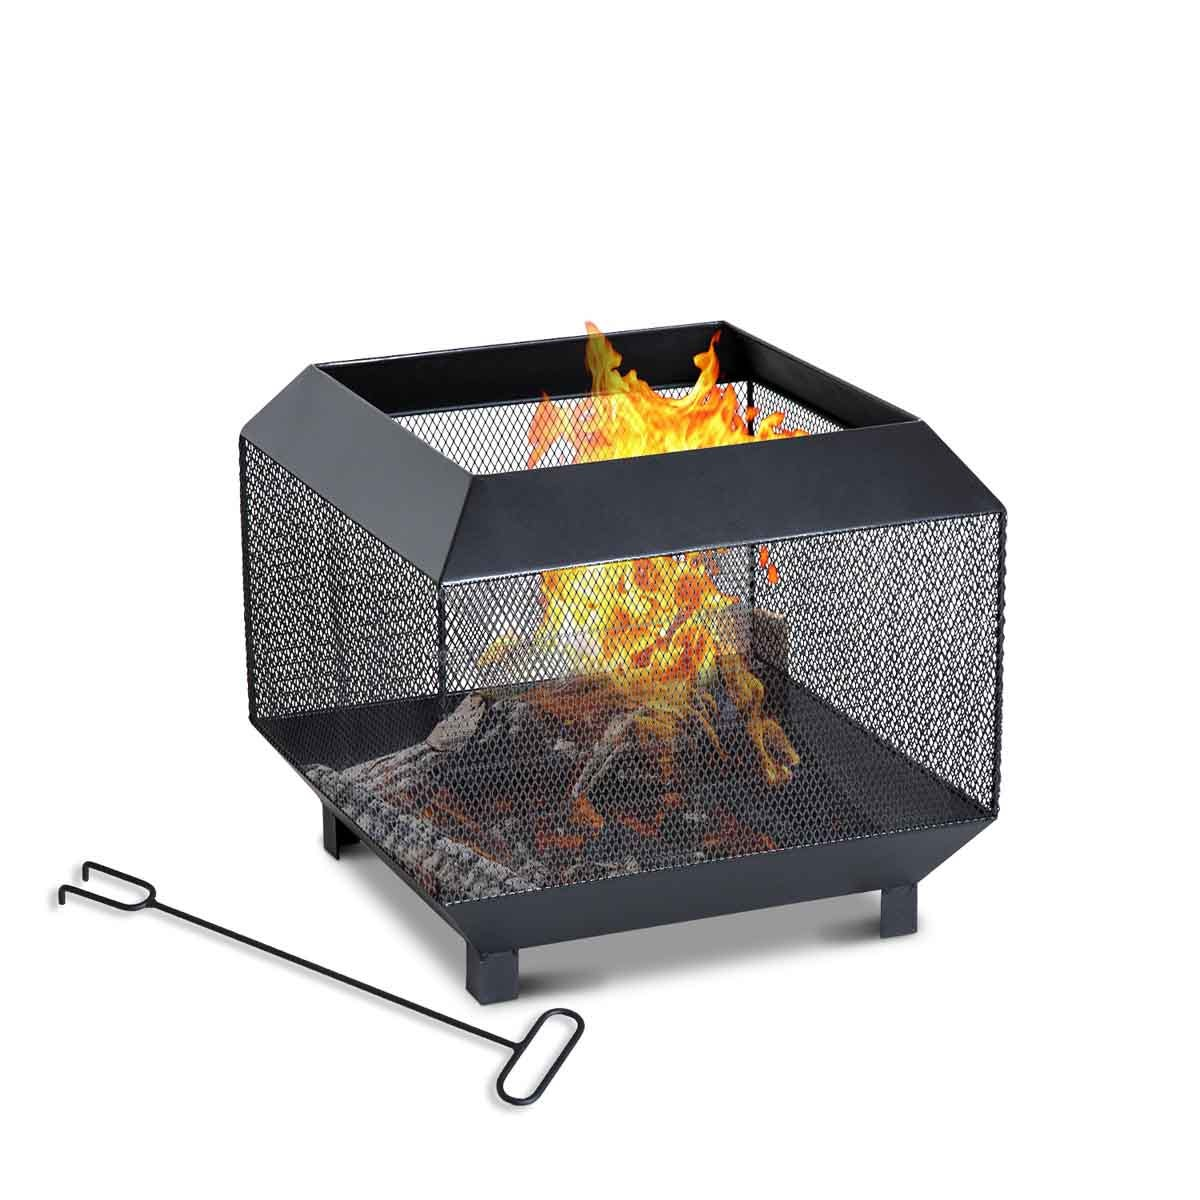 Outsunny Cube Fire Pit with Poker - Black